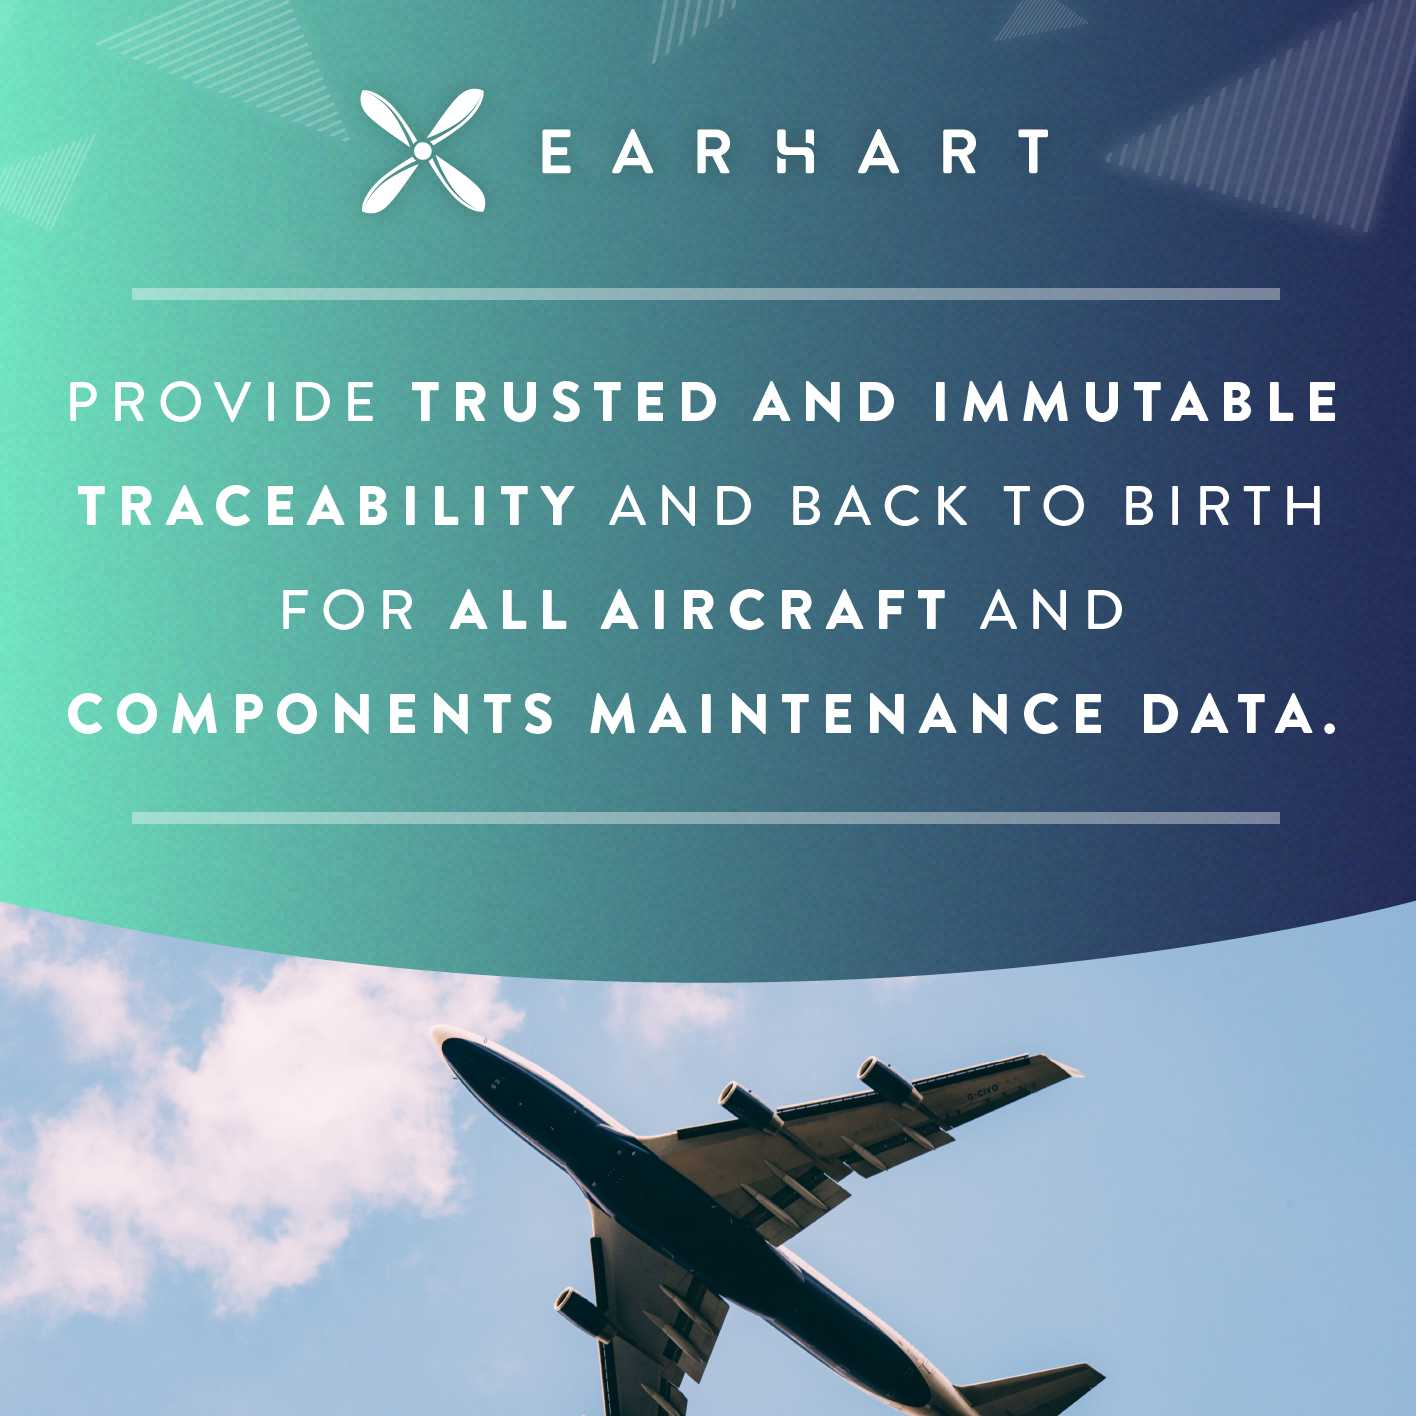 We aim to provide trusted and immutable traceabili..